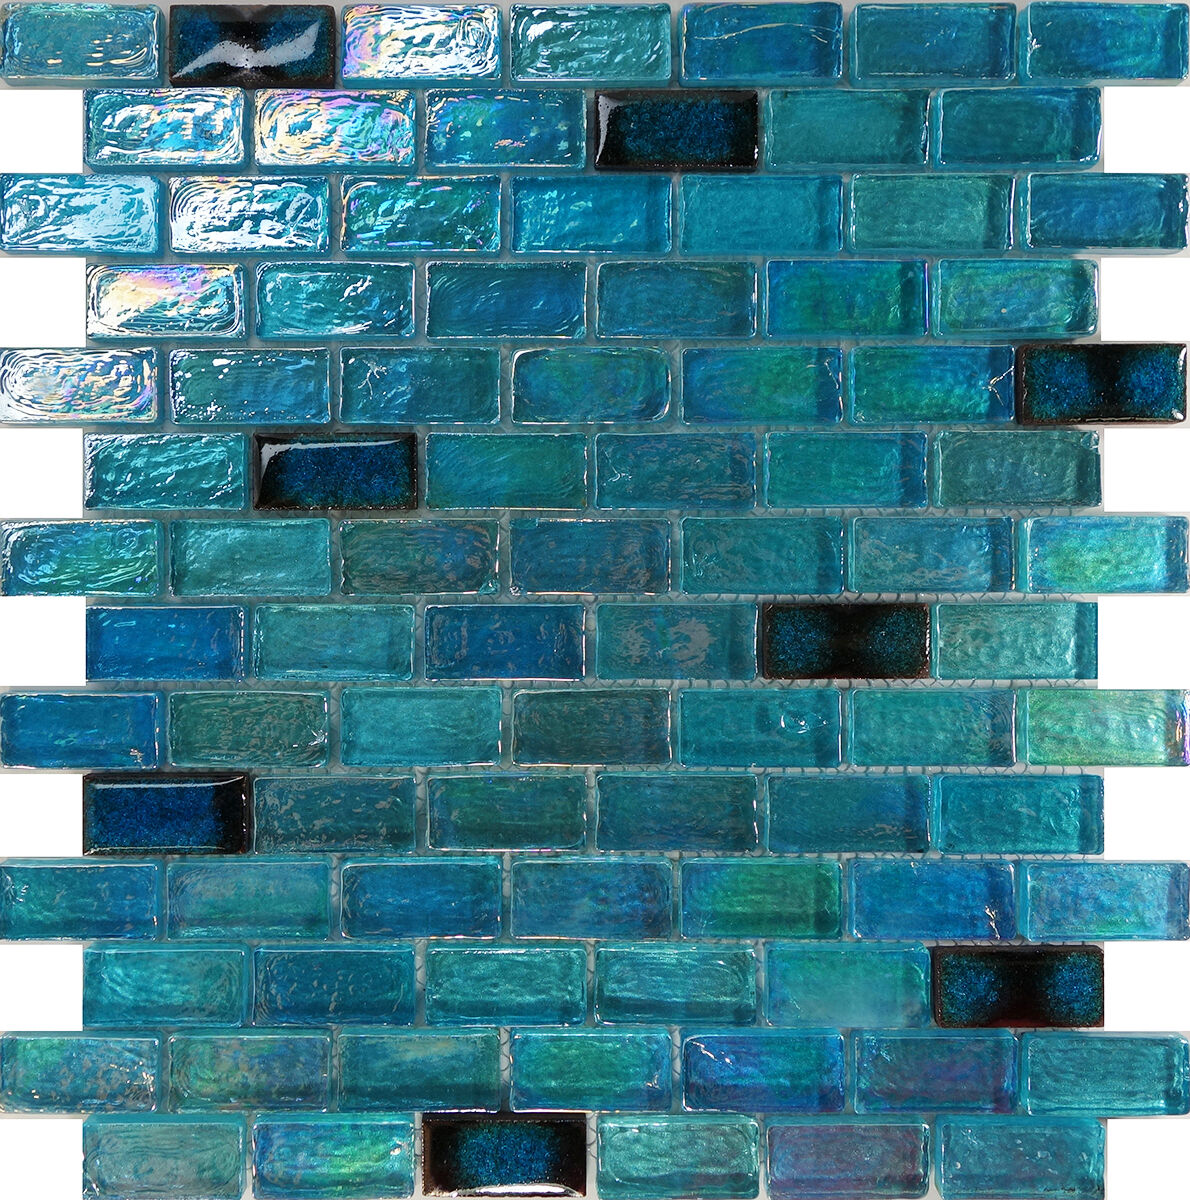 1SF BLUE IRIDESCENT Glass Mosaic Tile Kitchen Backsplash Wall Floor ...